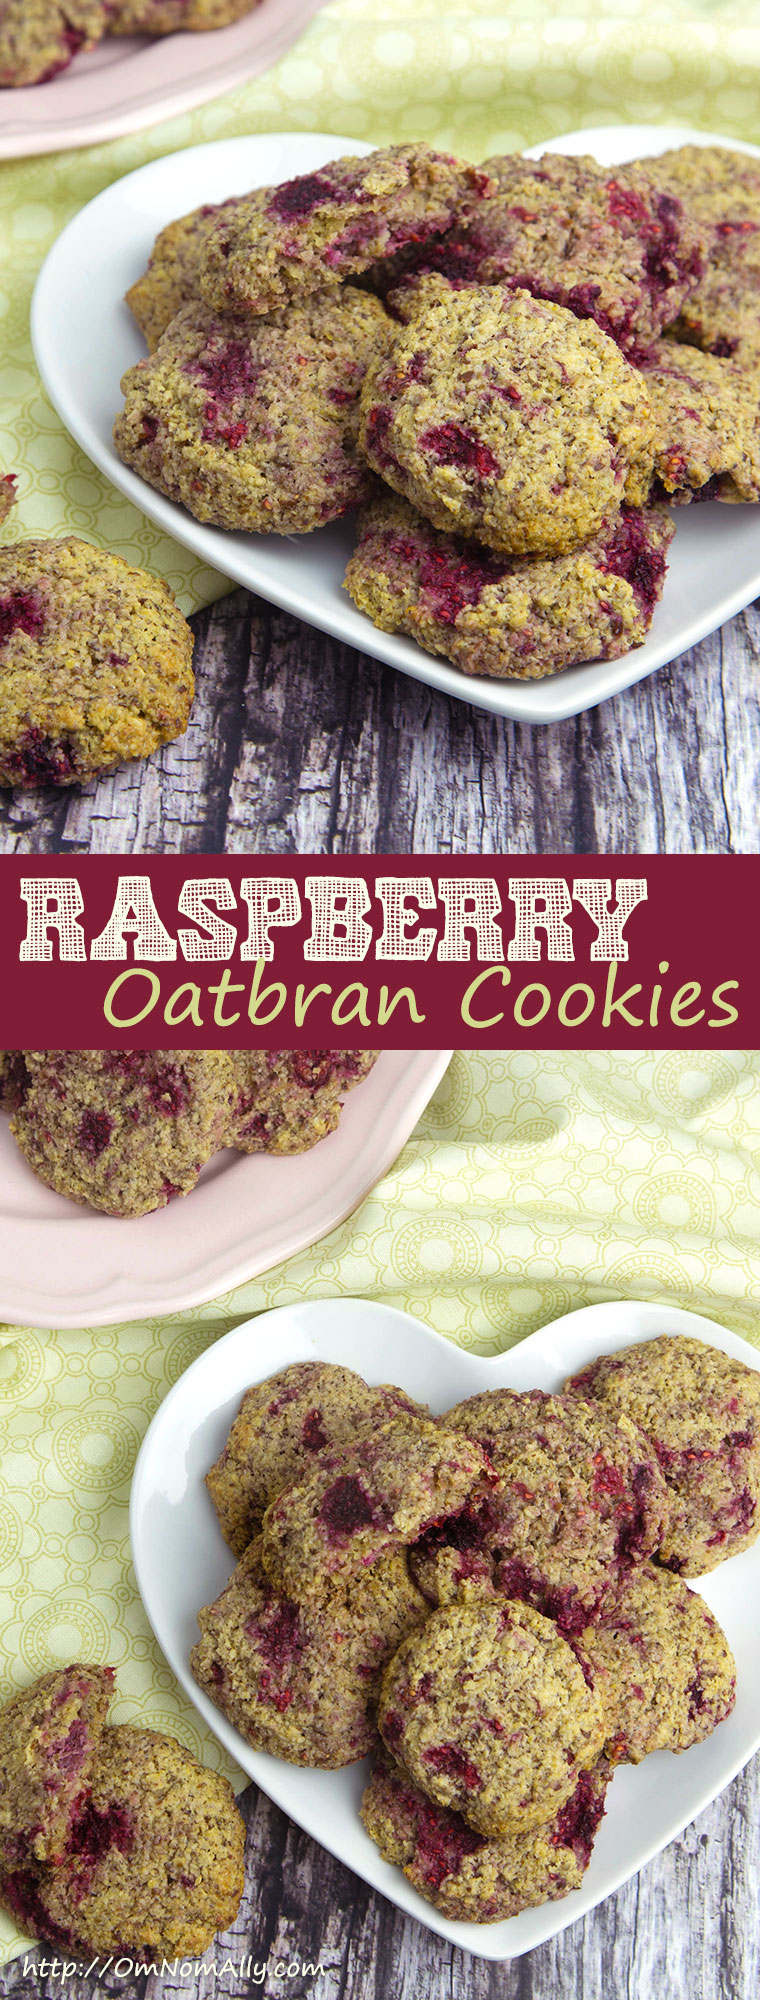 Product Review: Norbu Natural Sweetener + Raspberry Oatbran Cookies OmNomAlly